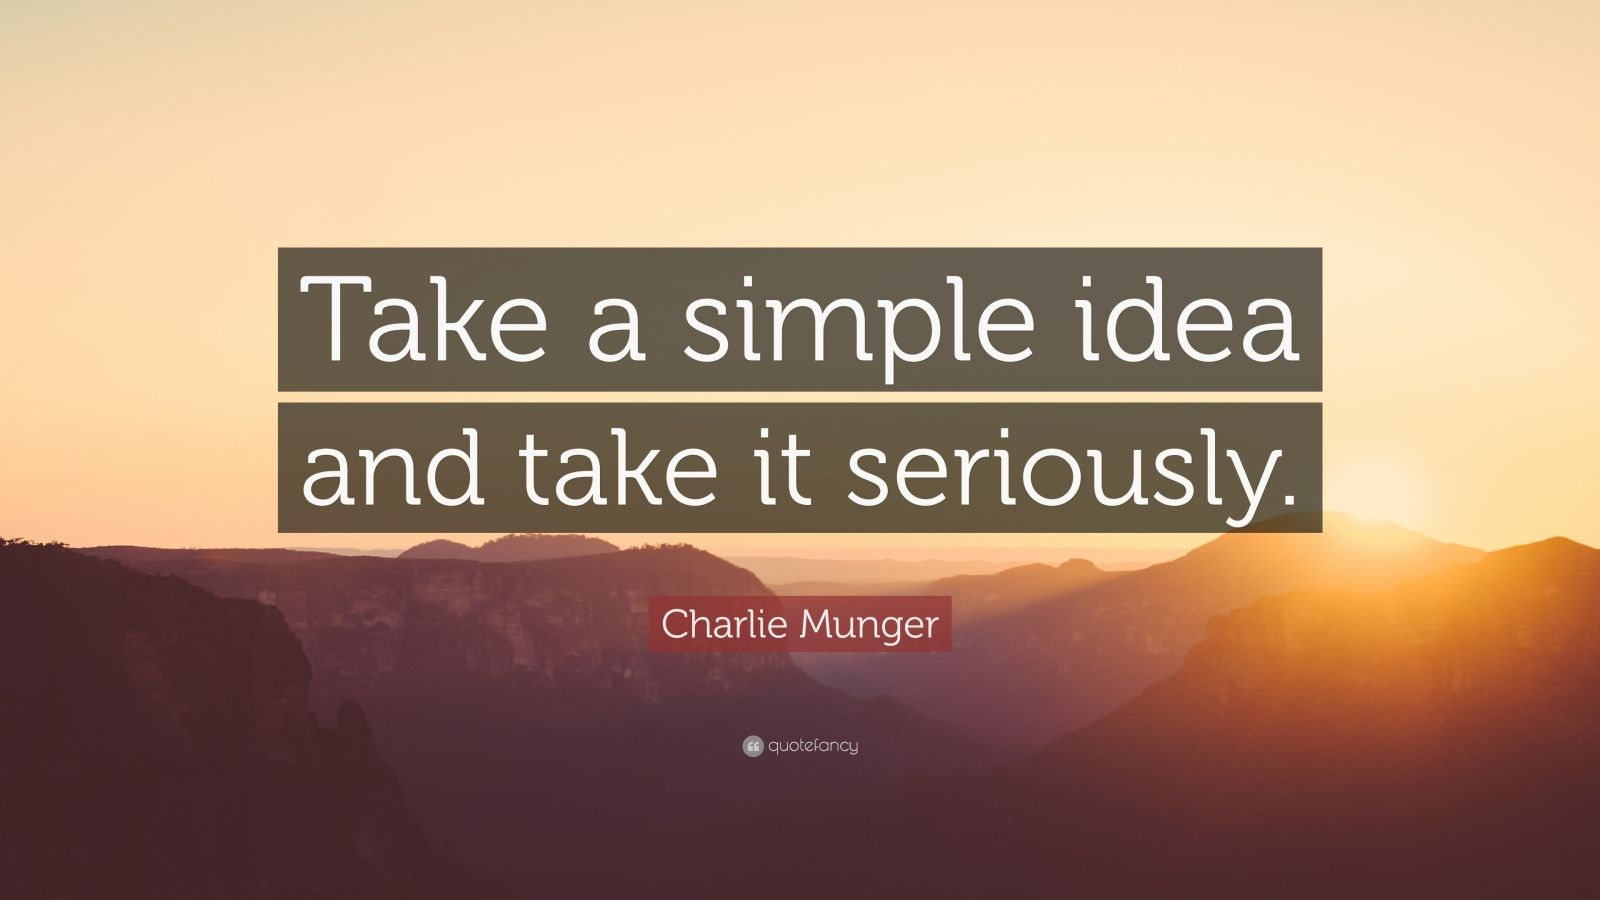 Quote Charlie Munger Quotes 100 Wallpapers  Quotefancy